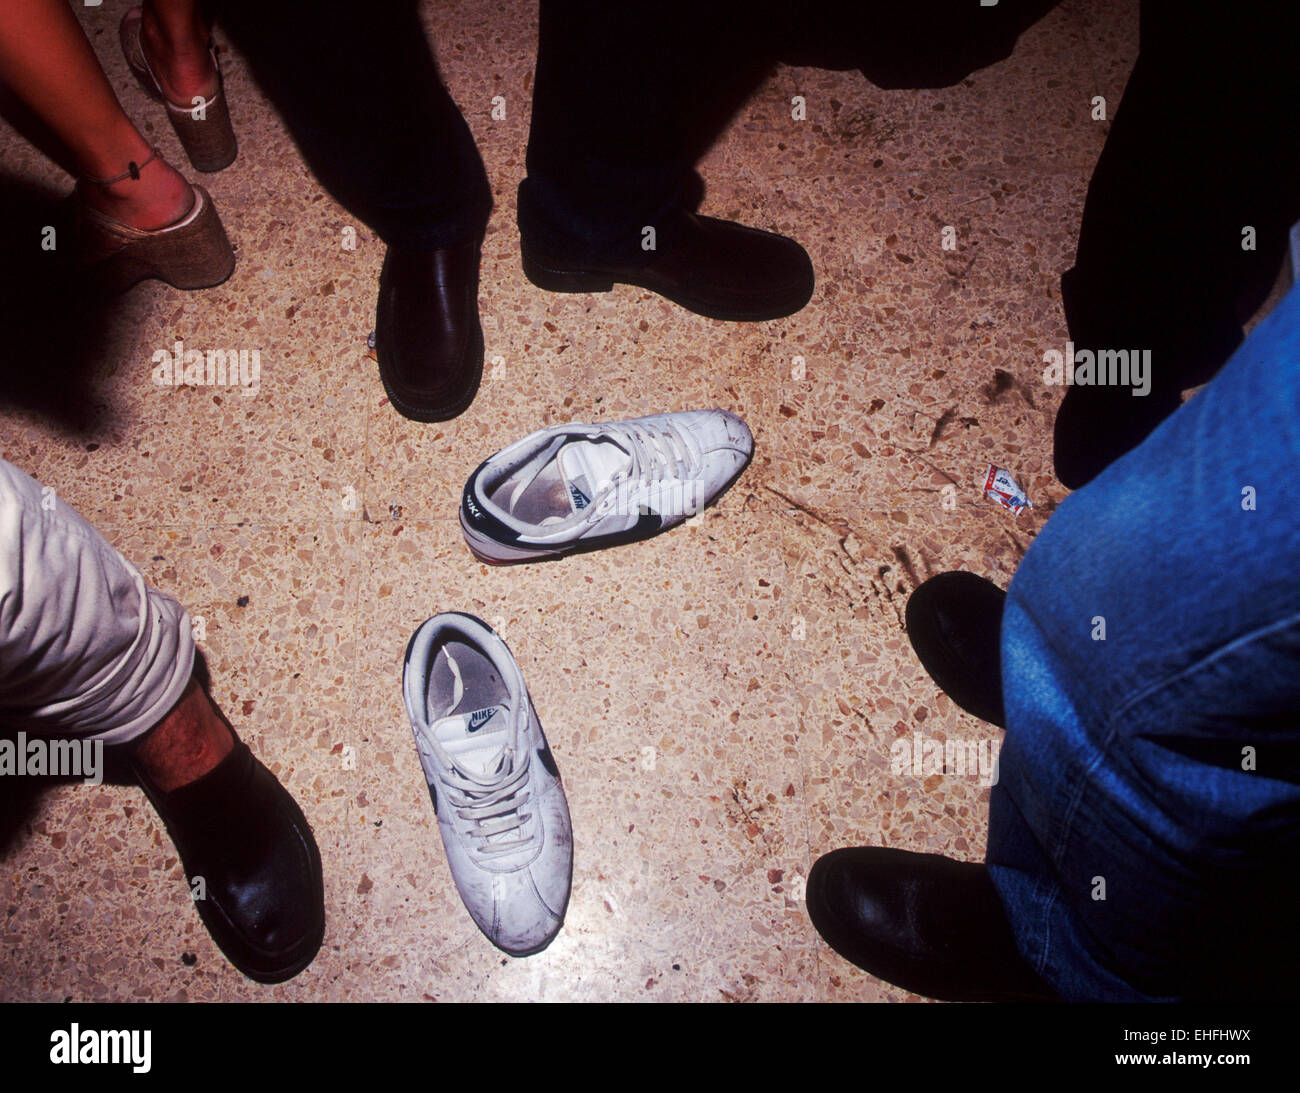 Abandoned trainers on the dancefloor of Es Paradis in Ibiza. - Stock Image